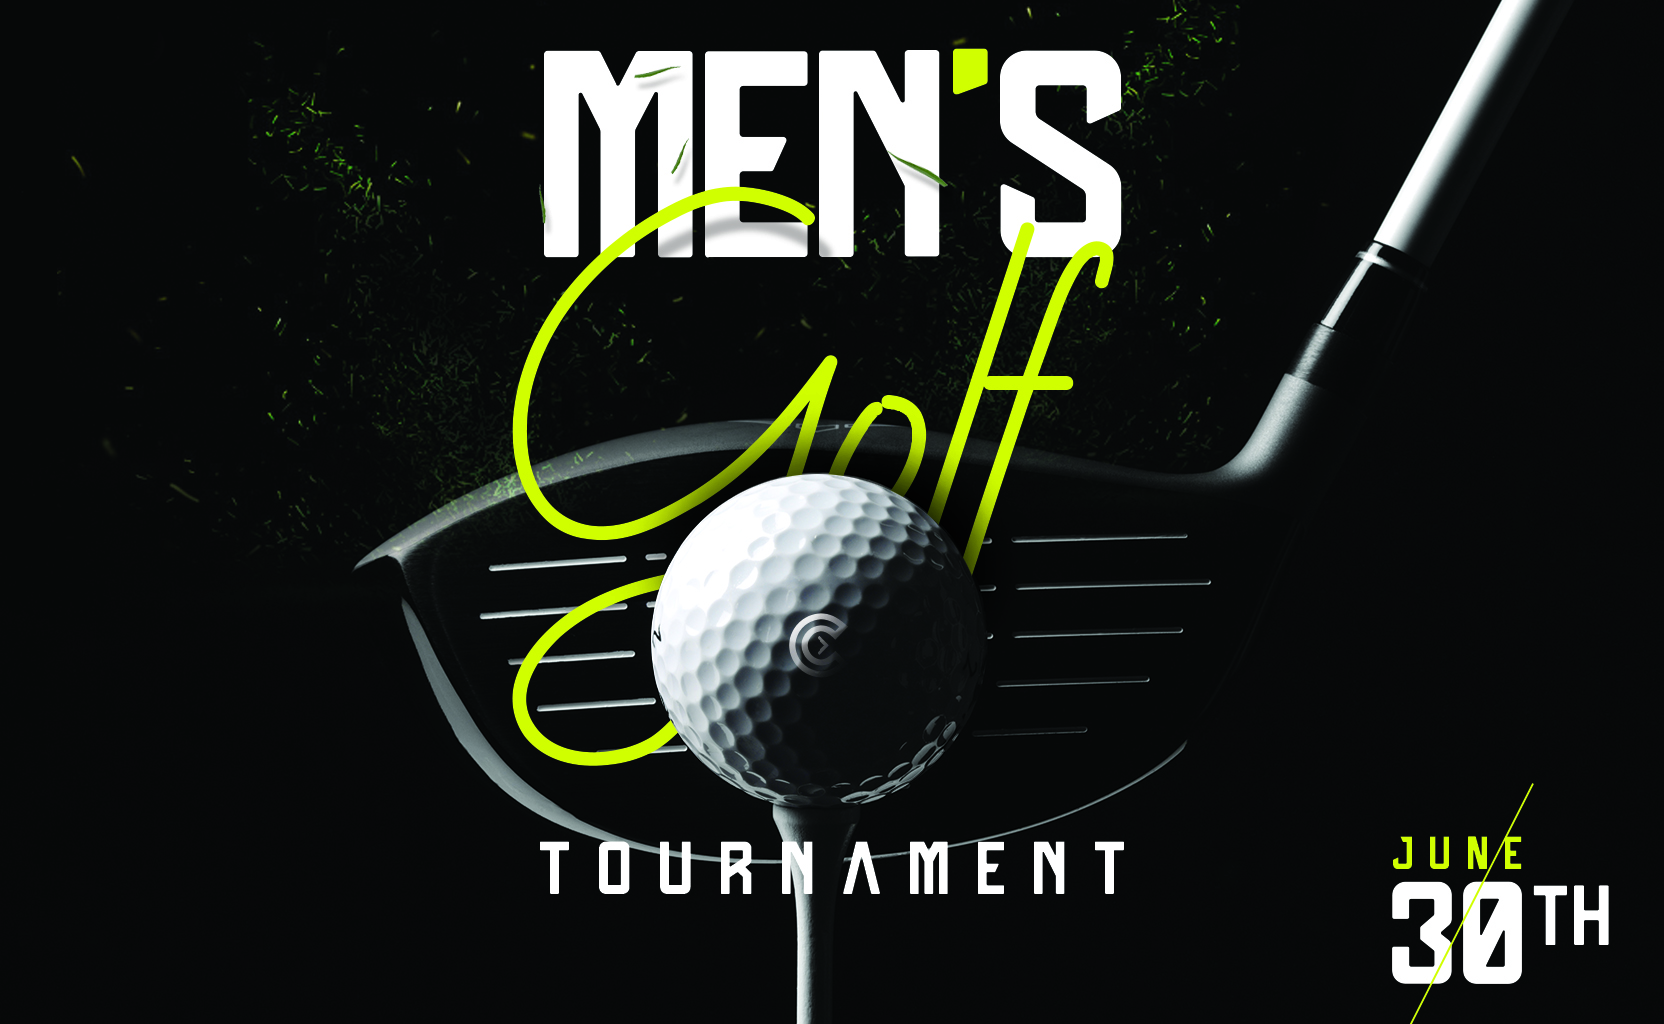 Events 2018 golf